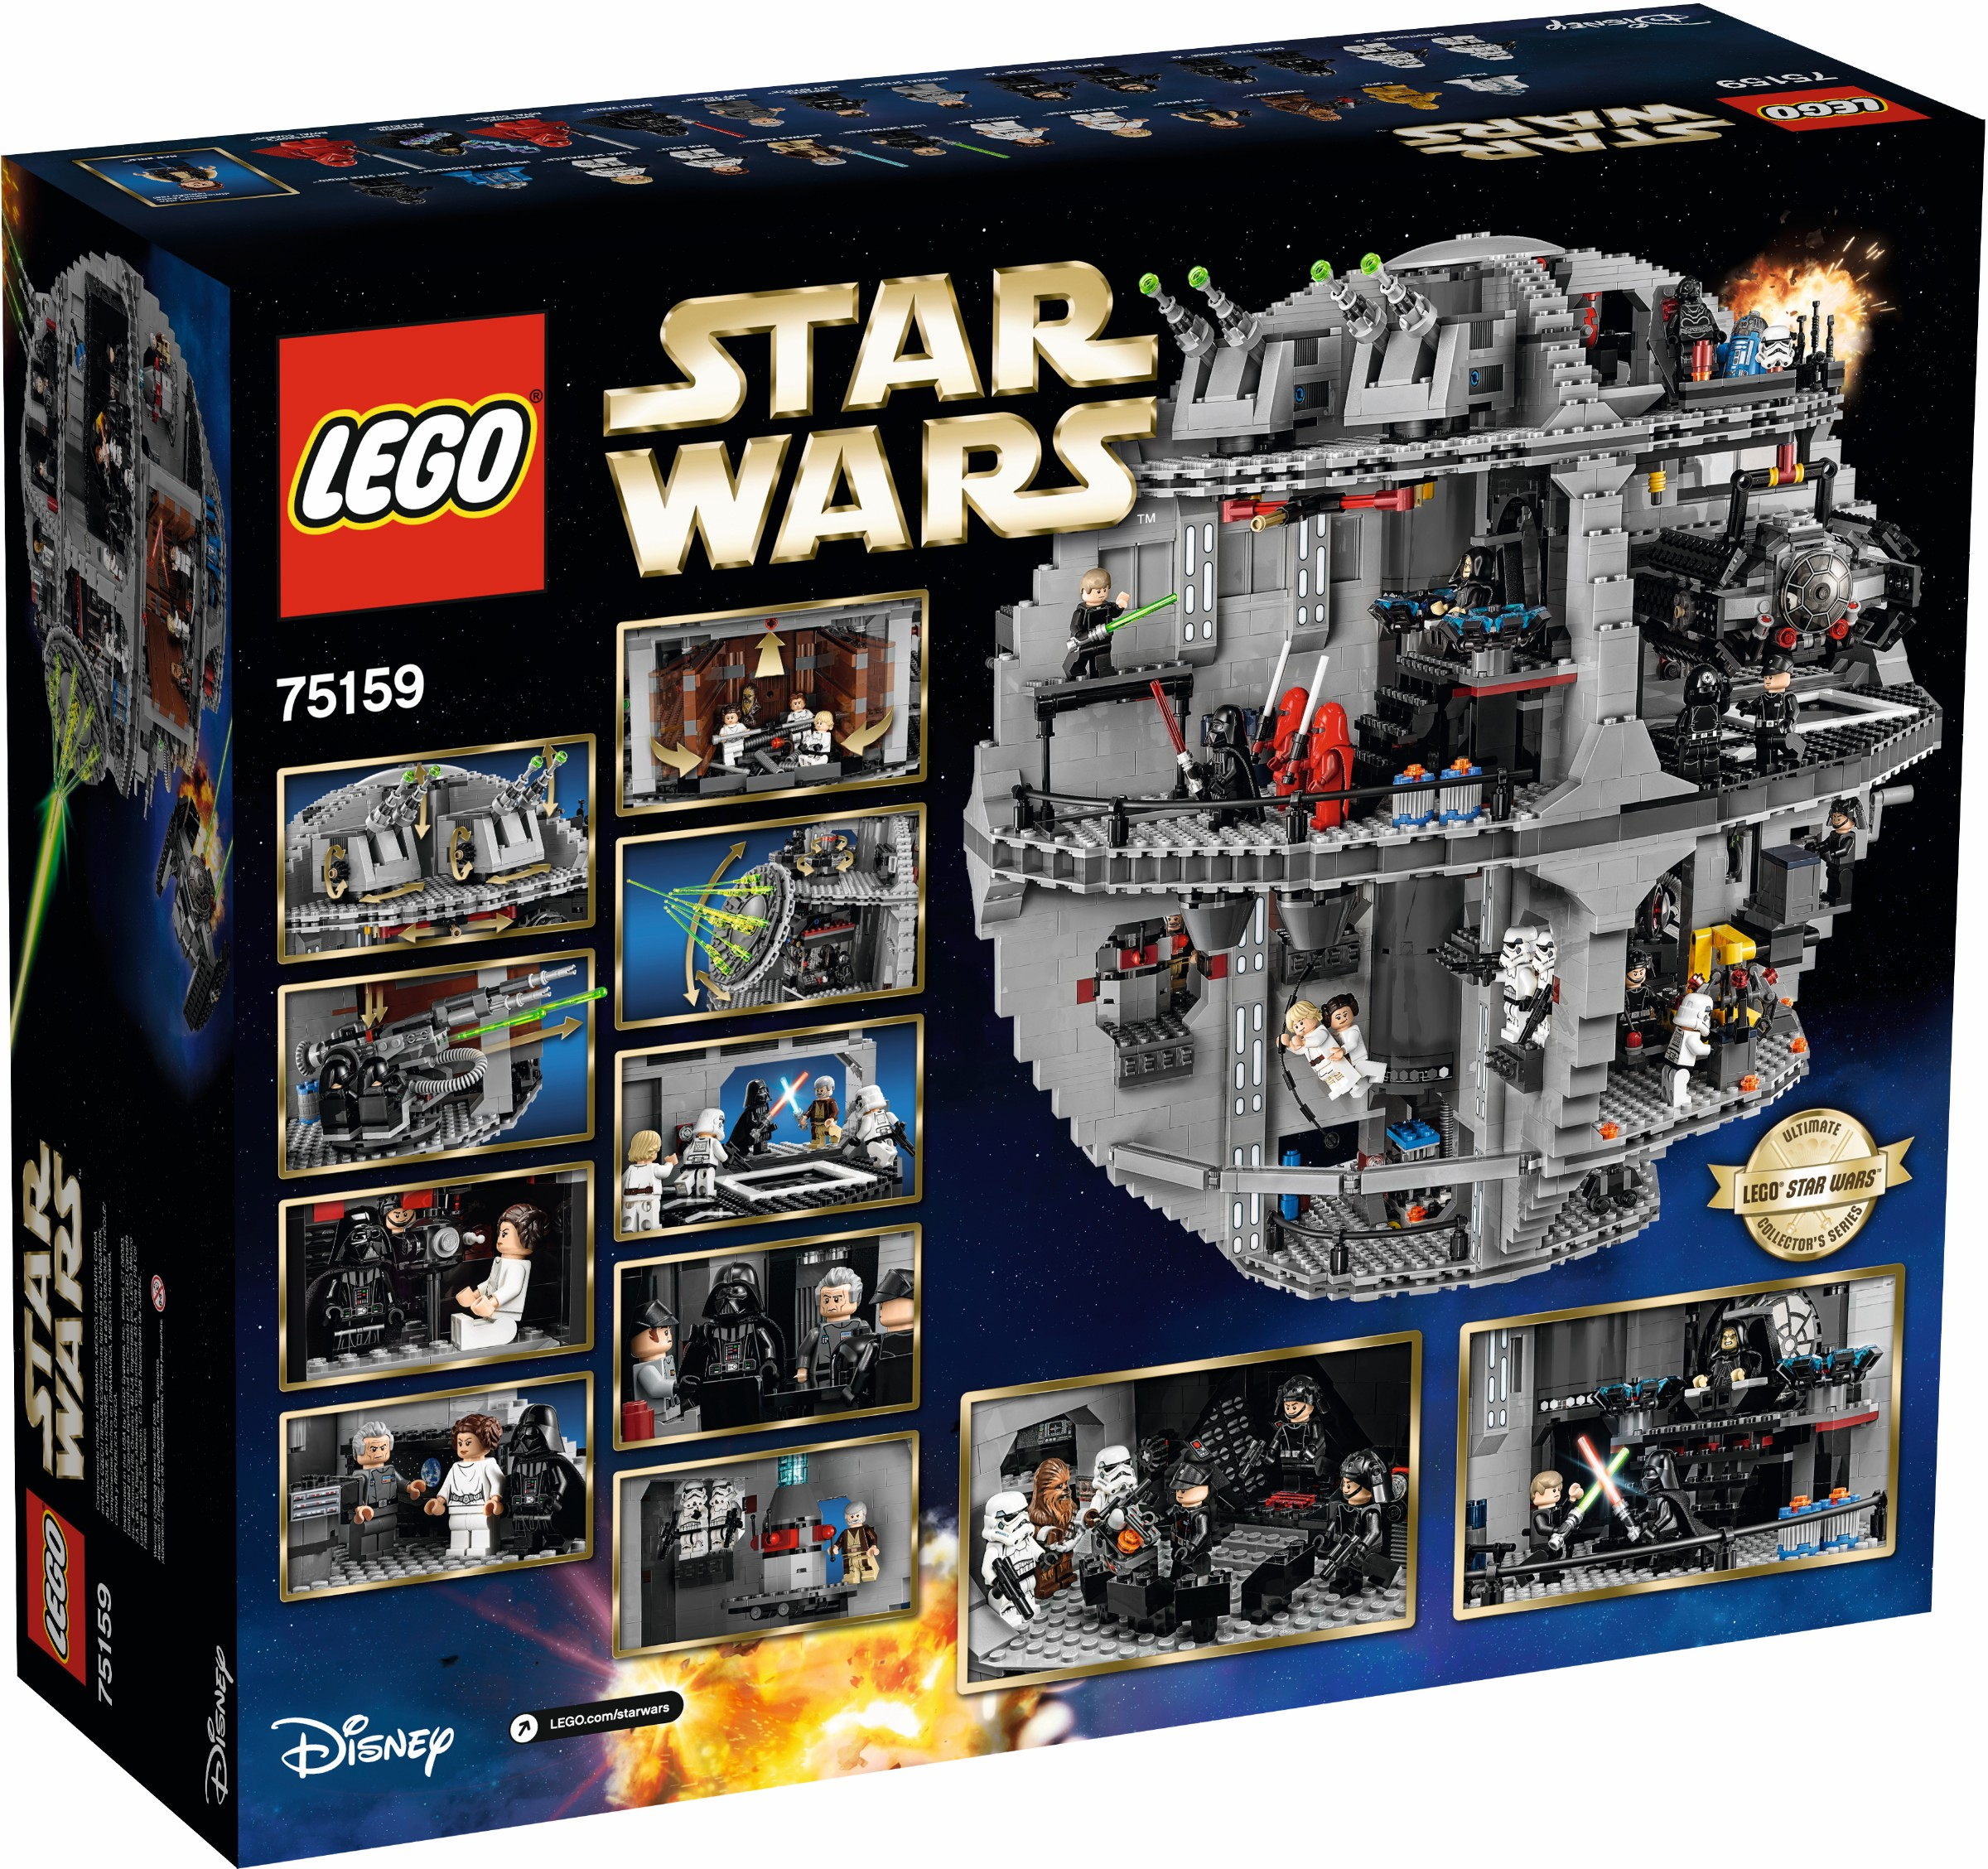 Lego Star Wars 75159 Death Review Brickset Set Guide Defy Stove Wiring Diagram The Graphic Designer Comments On Han Solos New Hair Piece While Niels Mlgrd Frederiksen Refers Directly To His Study Of 10188